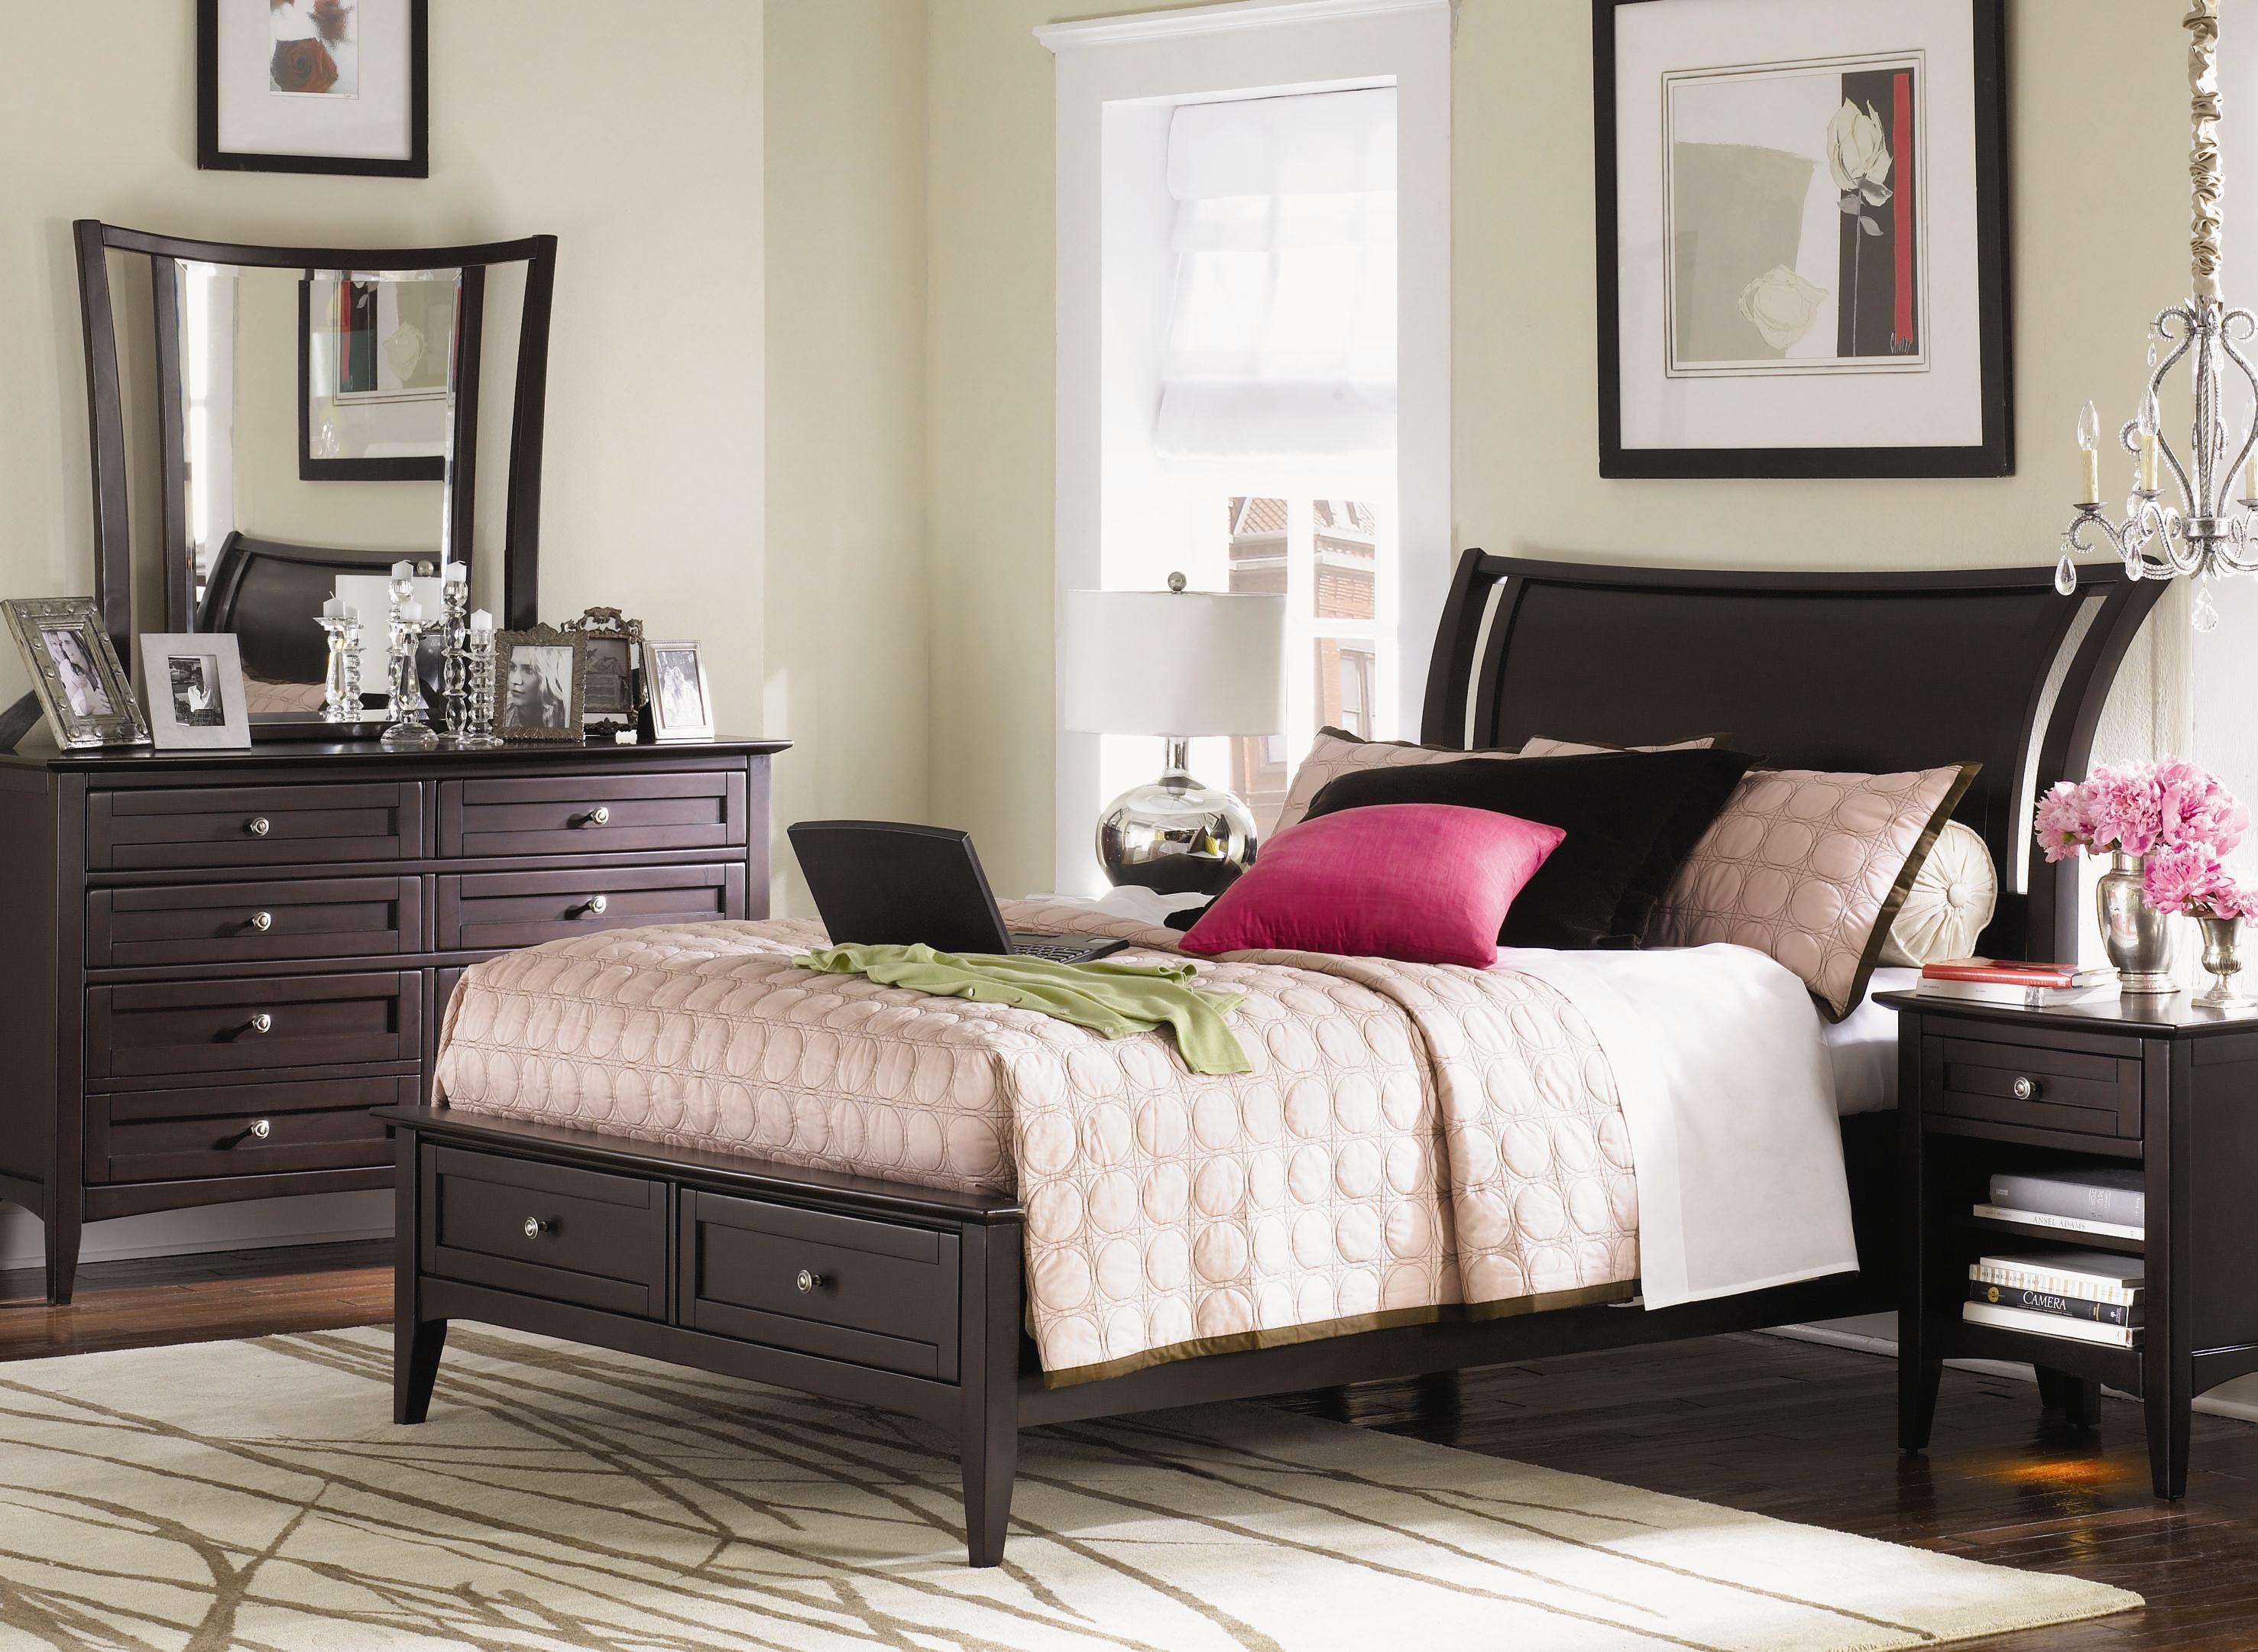 ... Aspenhome Kensington Queen Storage Bed